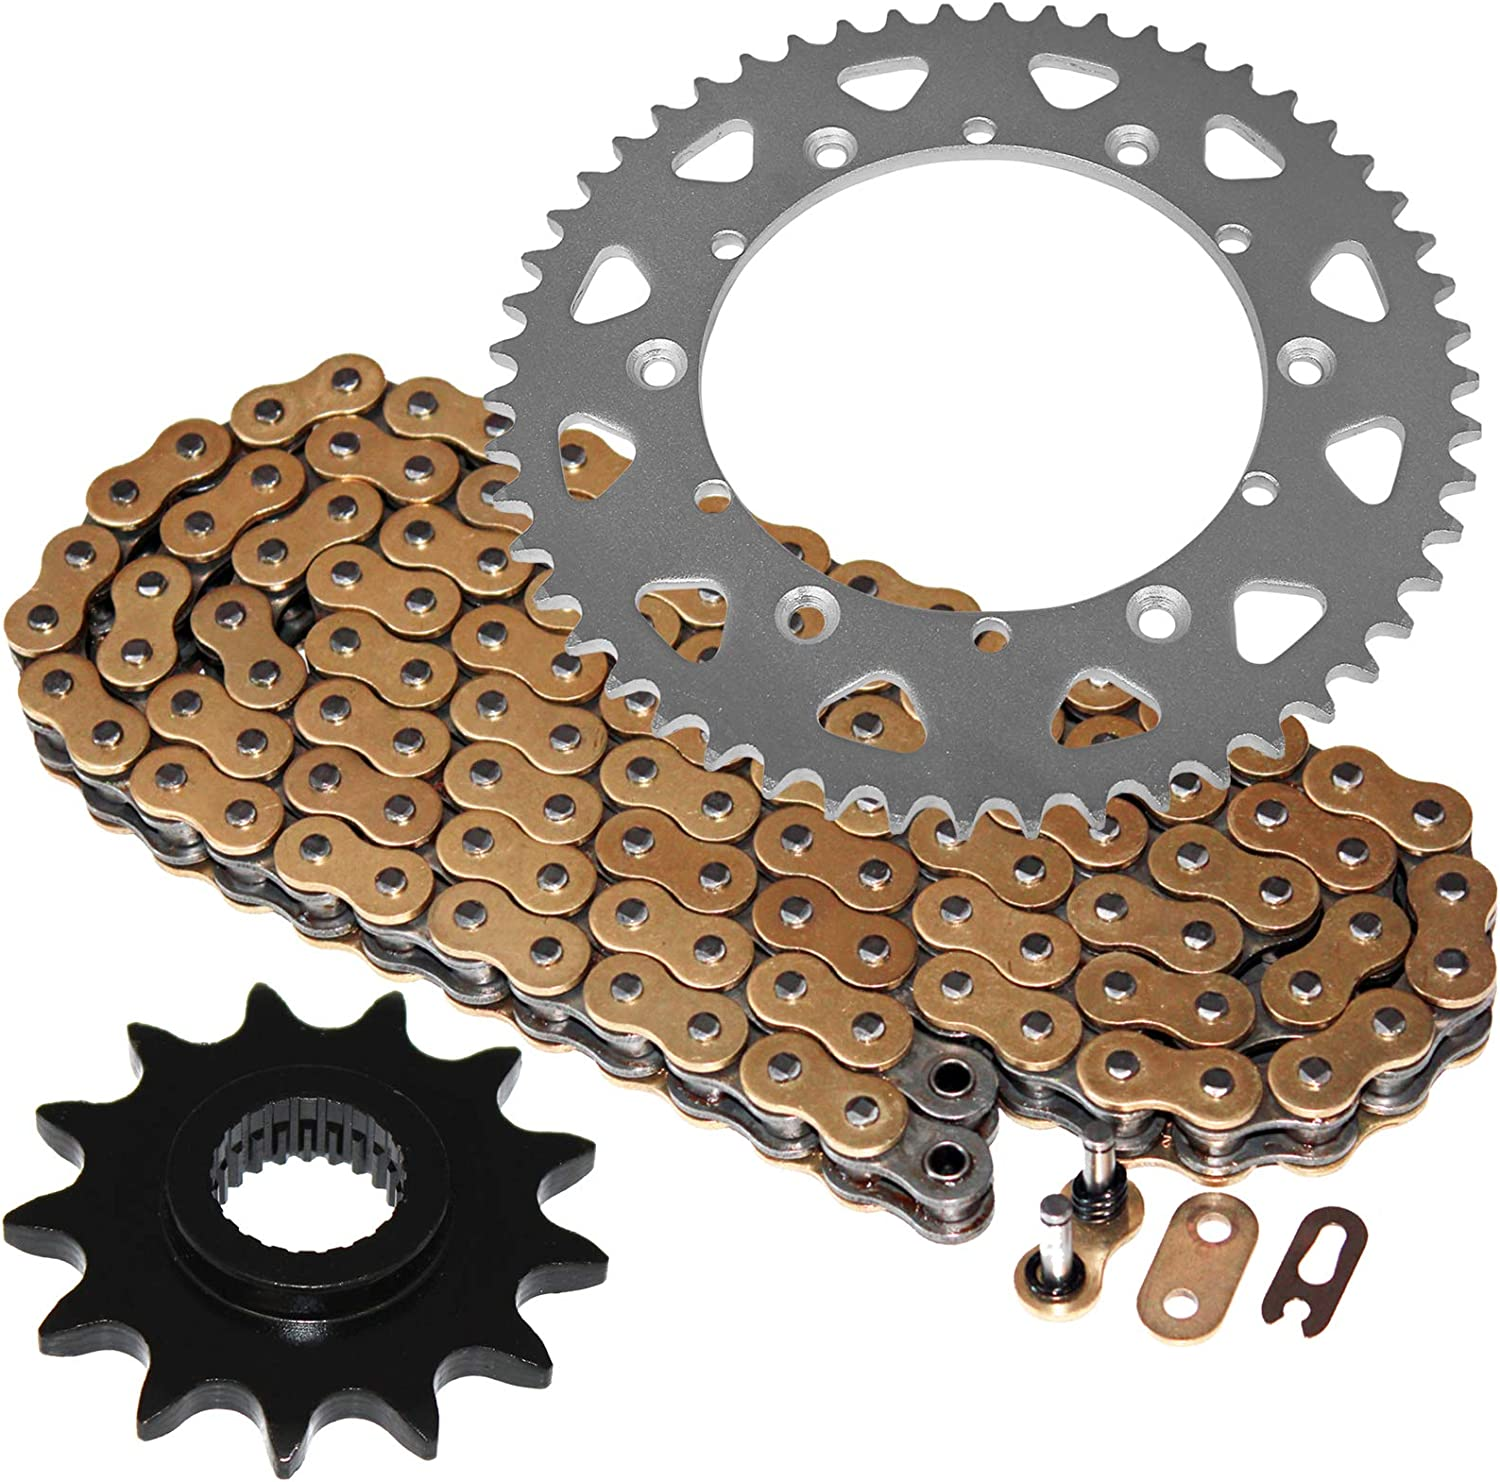 Cheap mail order specialty store Caltric compatible with Gold O-Ring Drive and Ki Bombing free shipping Chain Sprockets